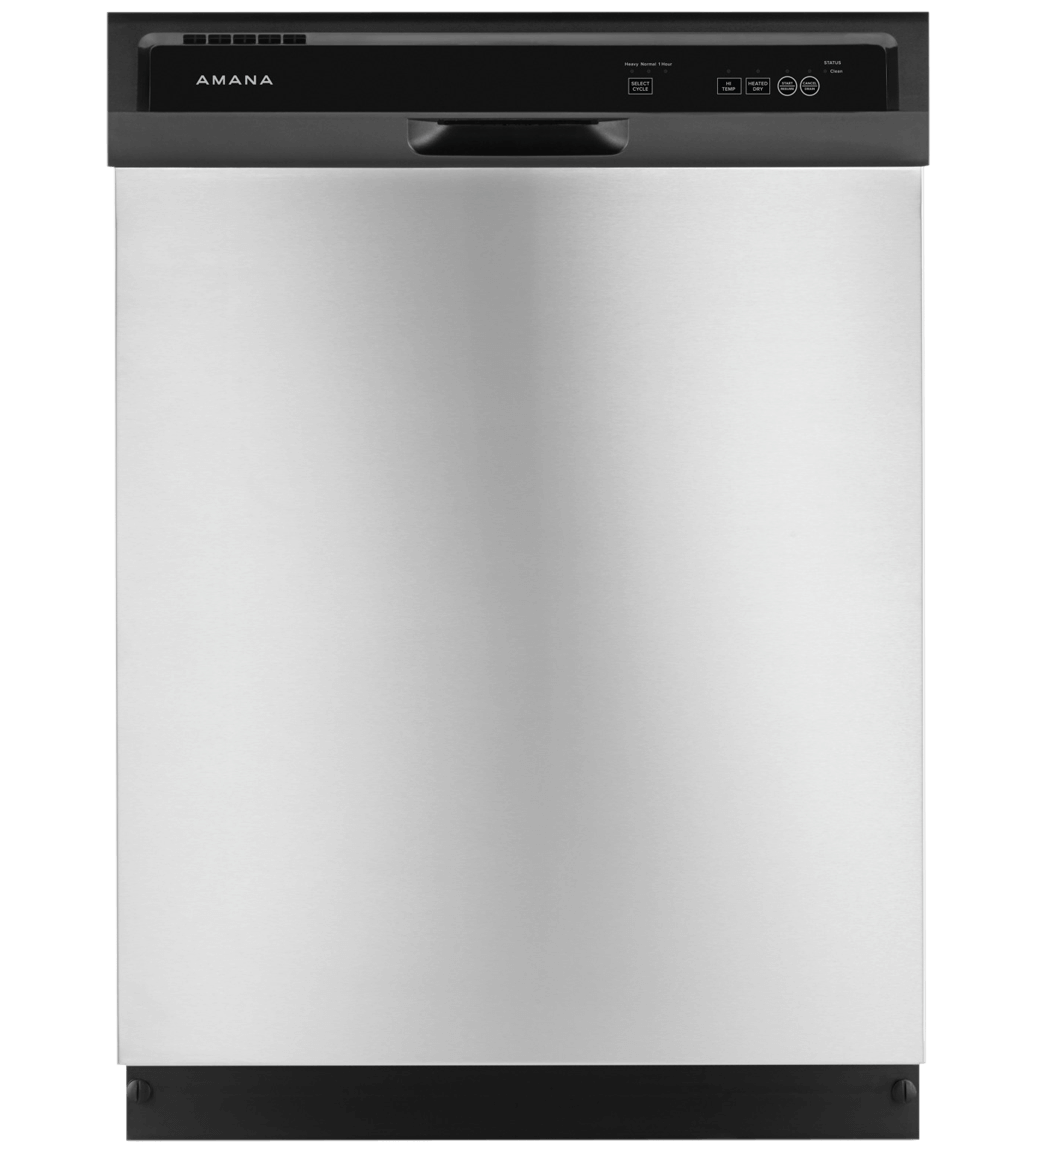 Amana Dishwasher